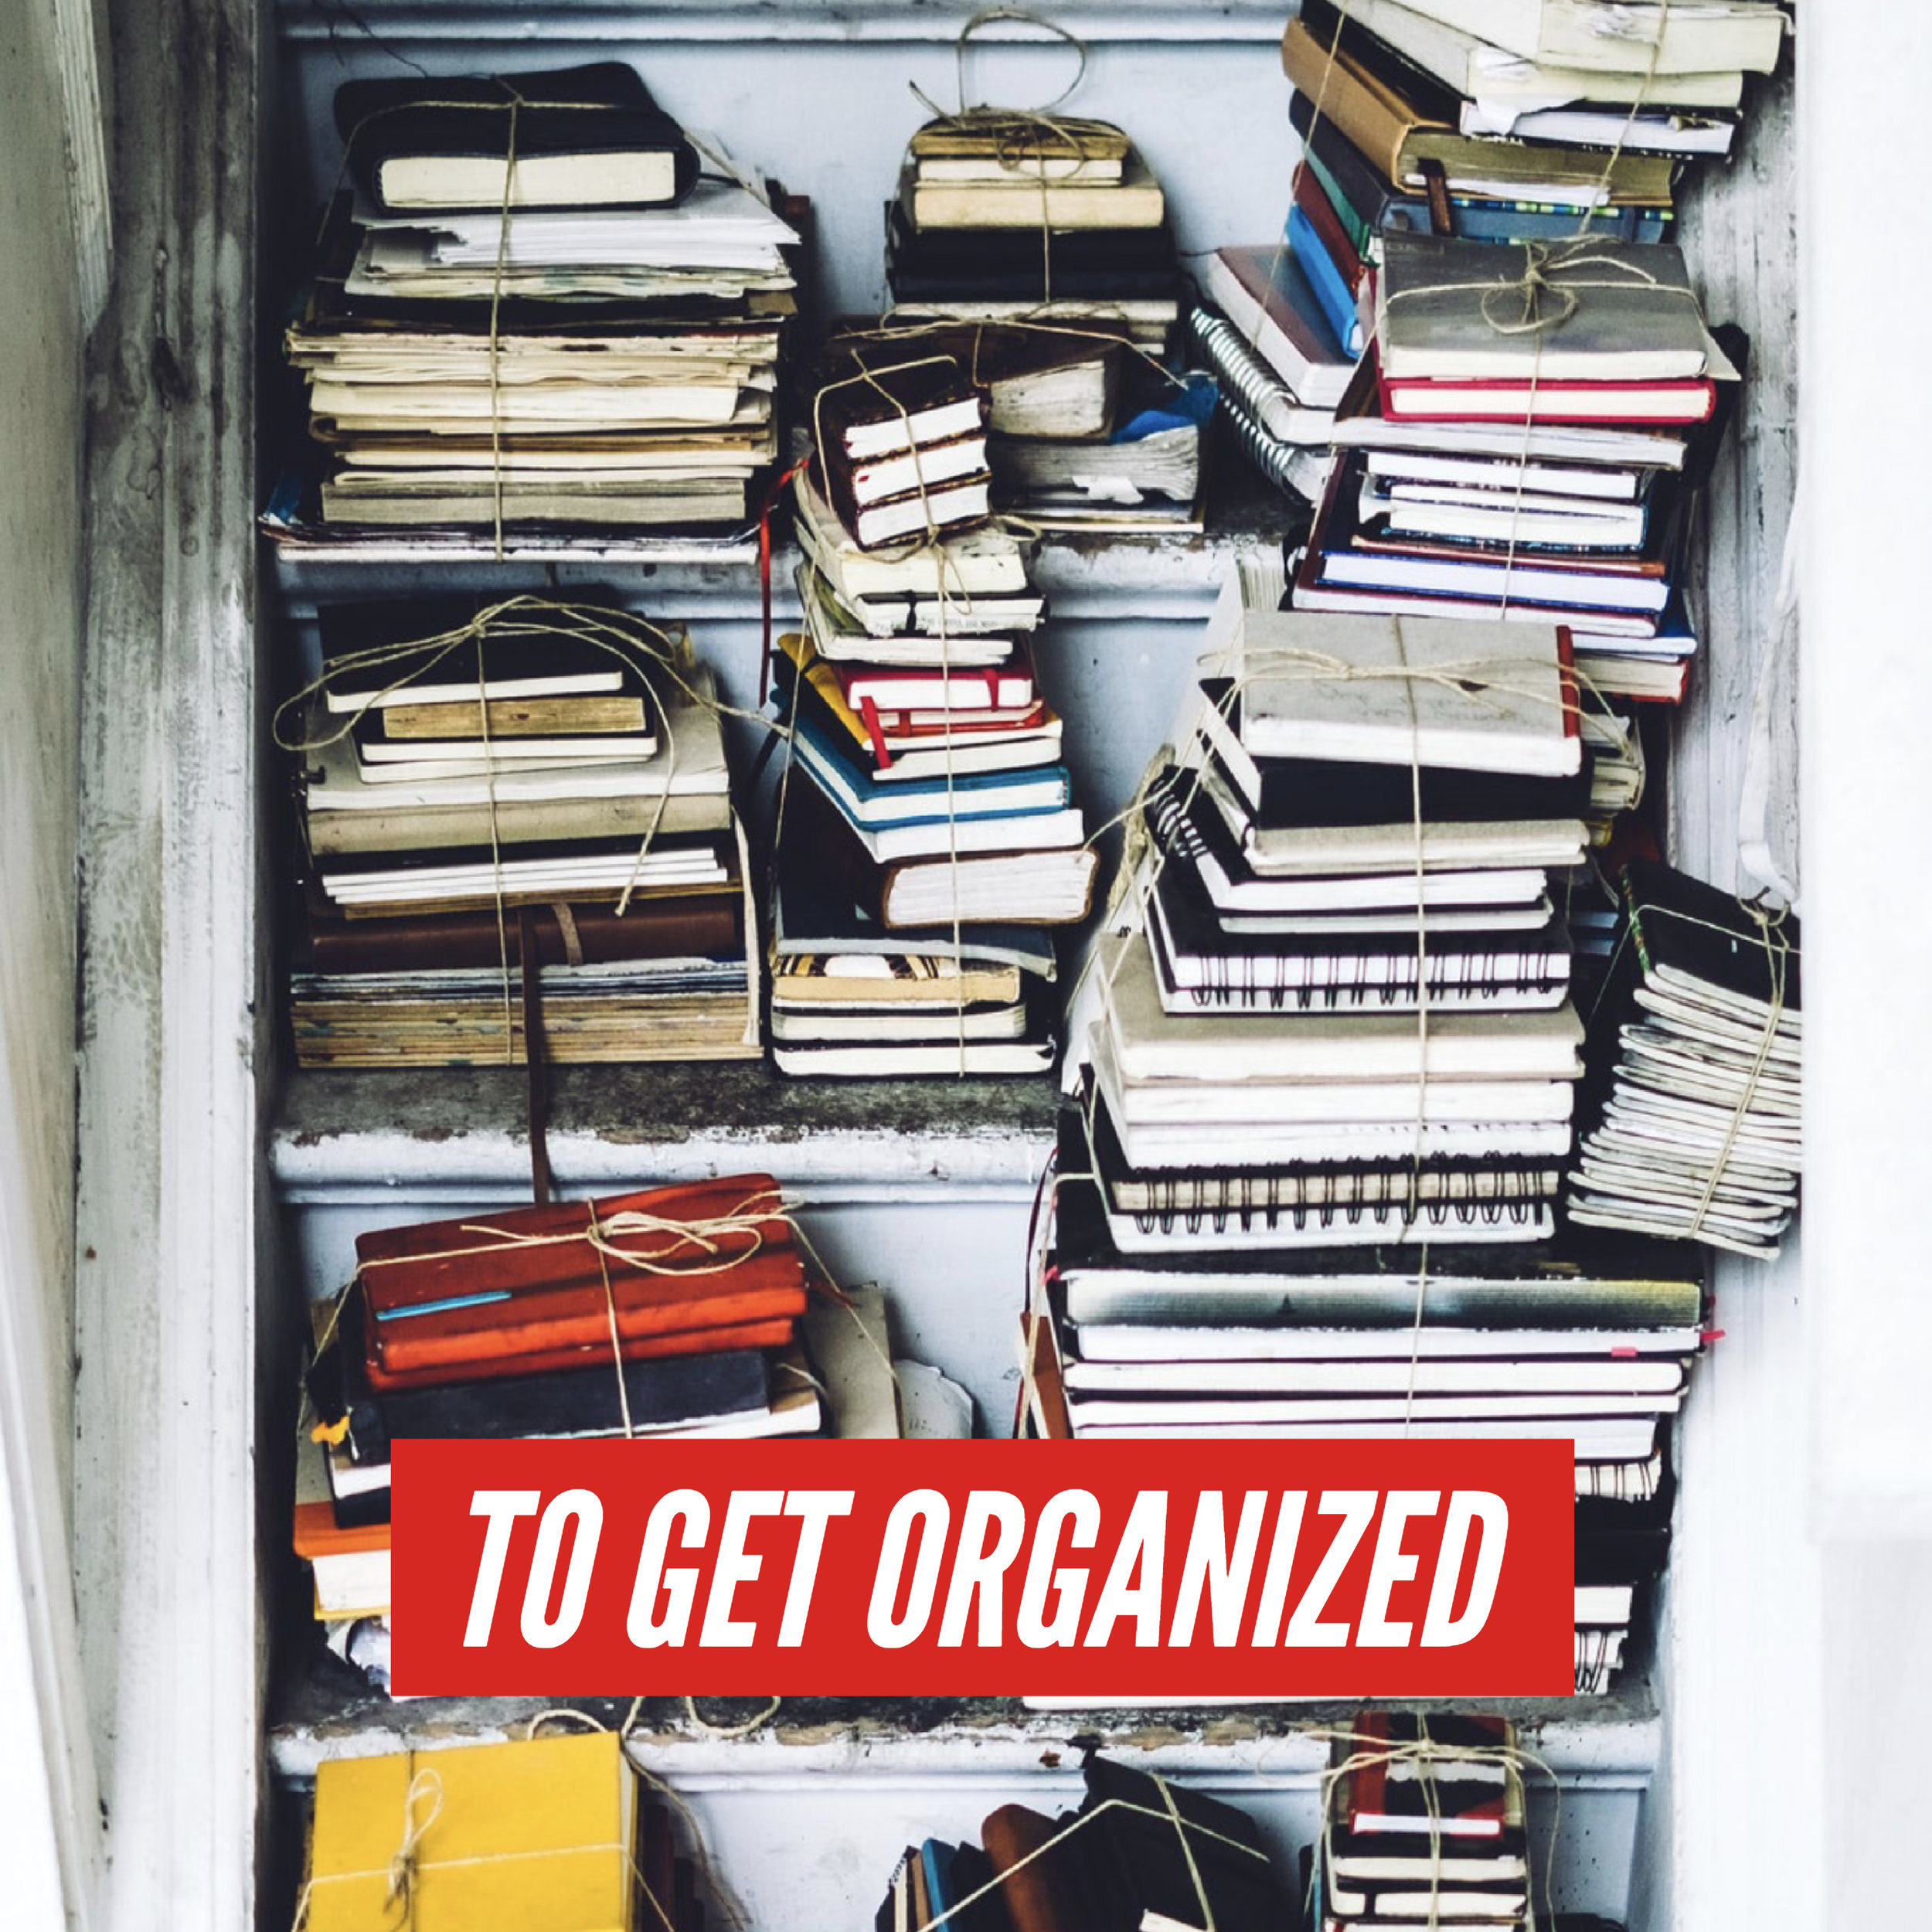 To get organized